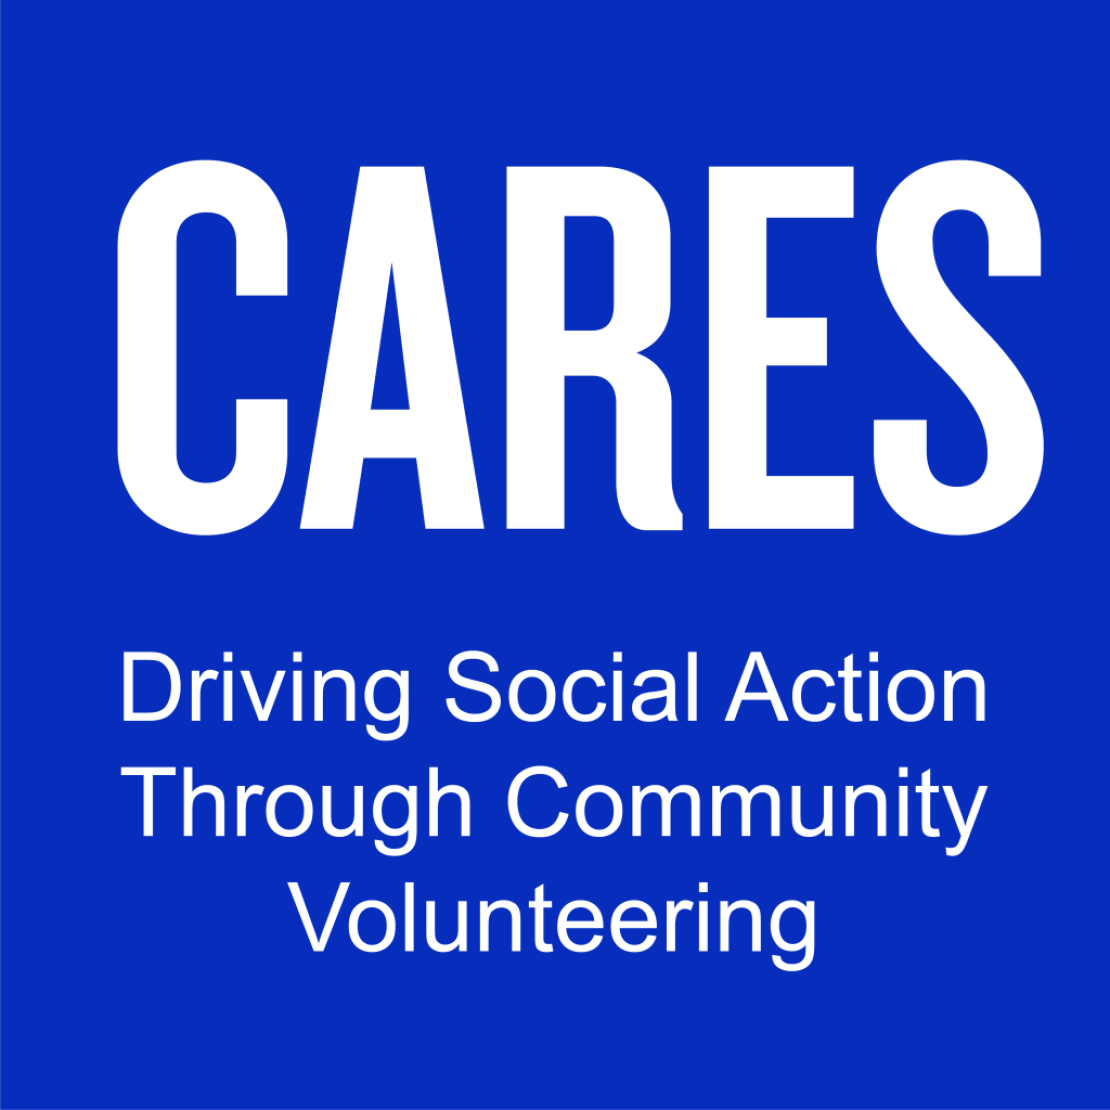 Driving Social Action Through Community Volunteering